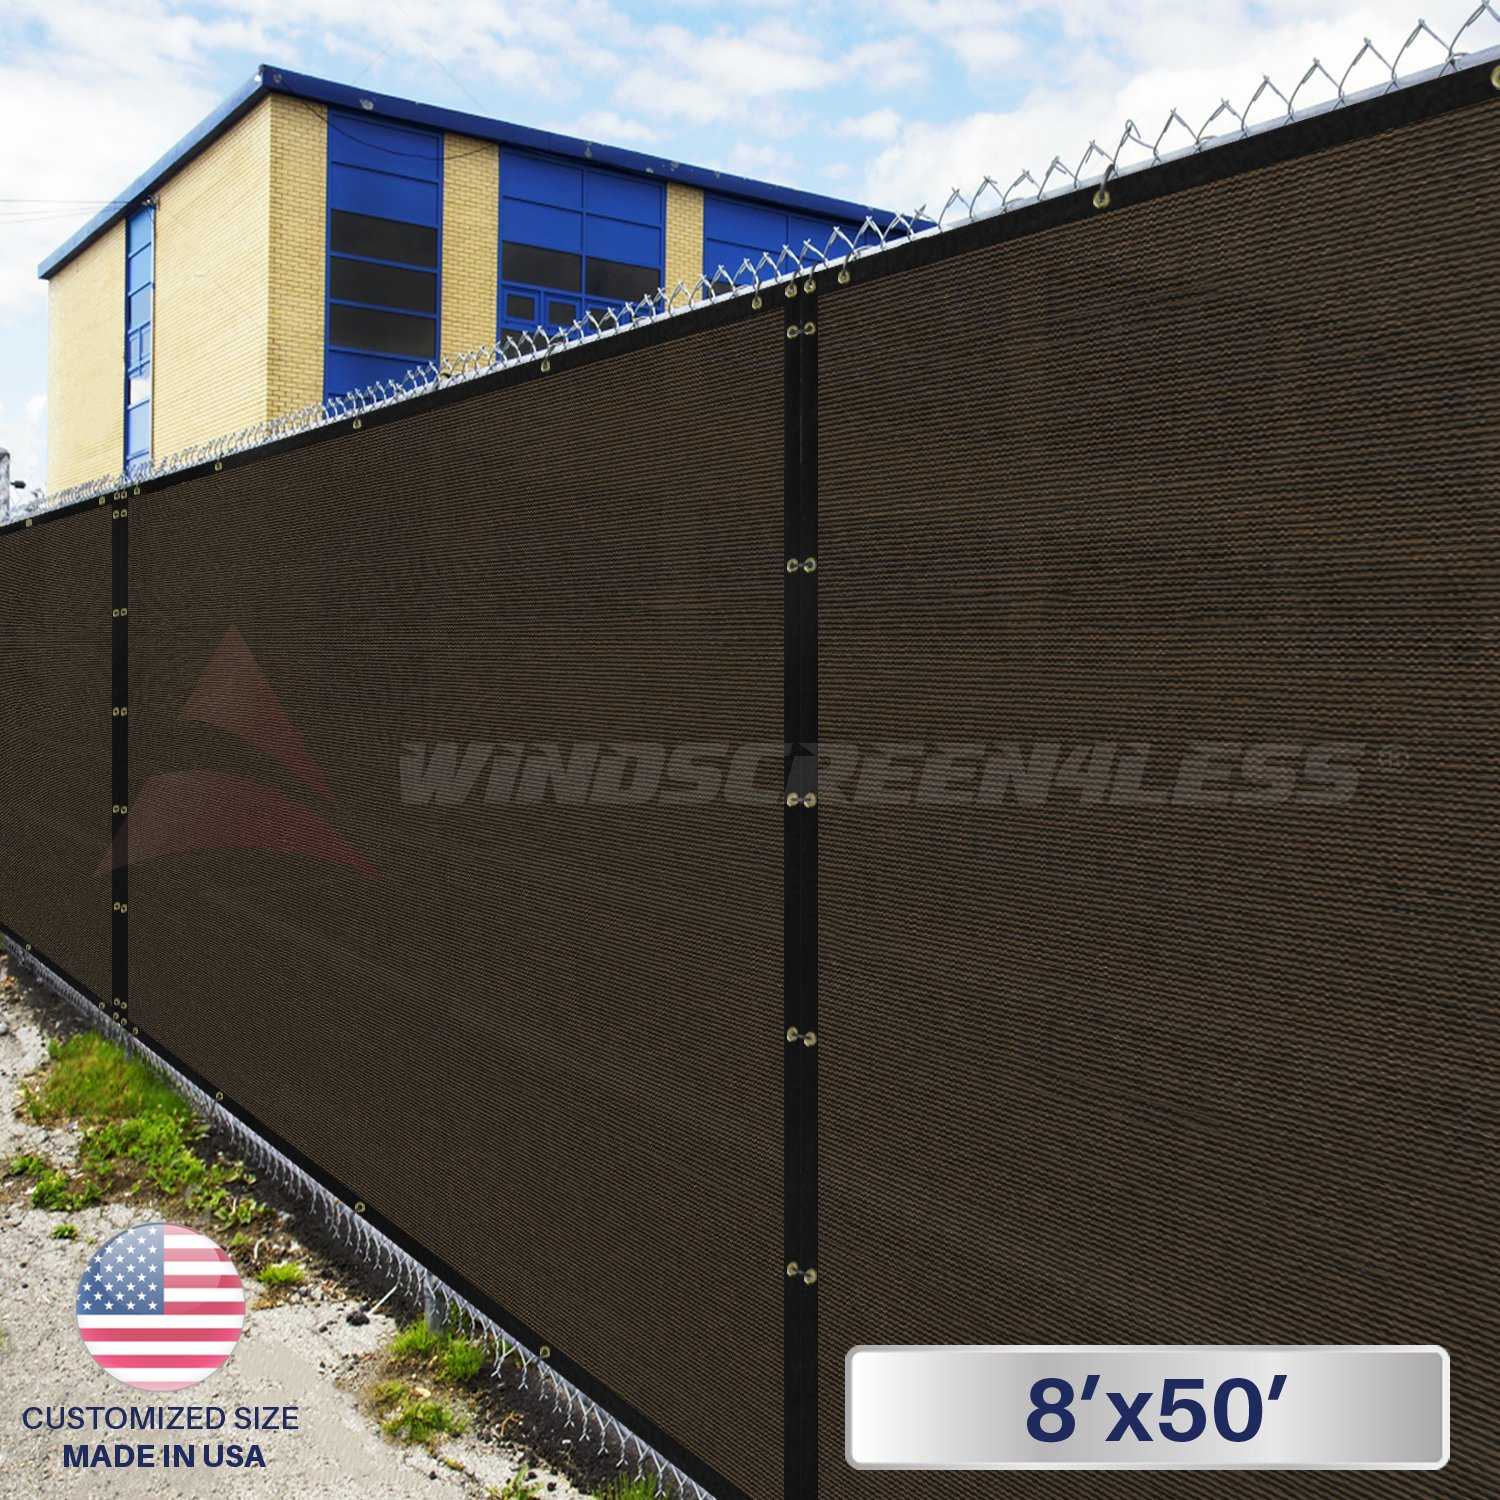 e4944a81afd3 Windscreen4less Heavy Duty Privacy Screen Fence in Color Brown with Black  Strips 8' x 50